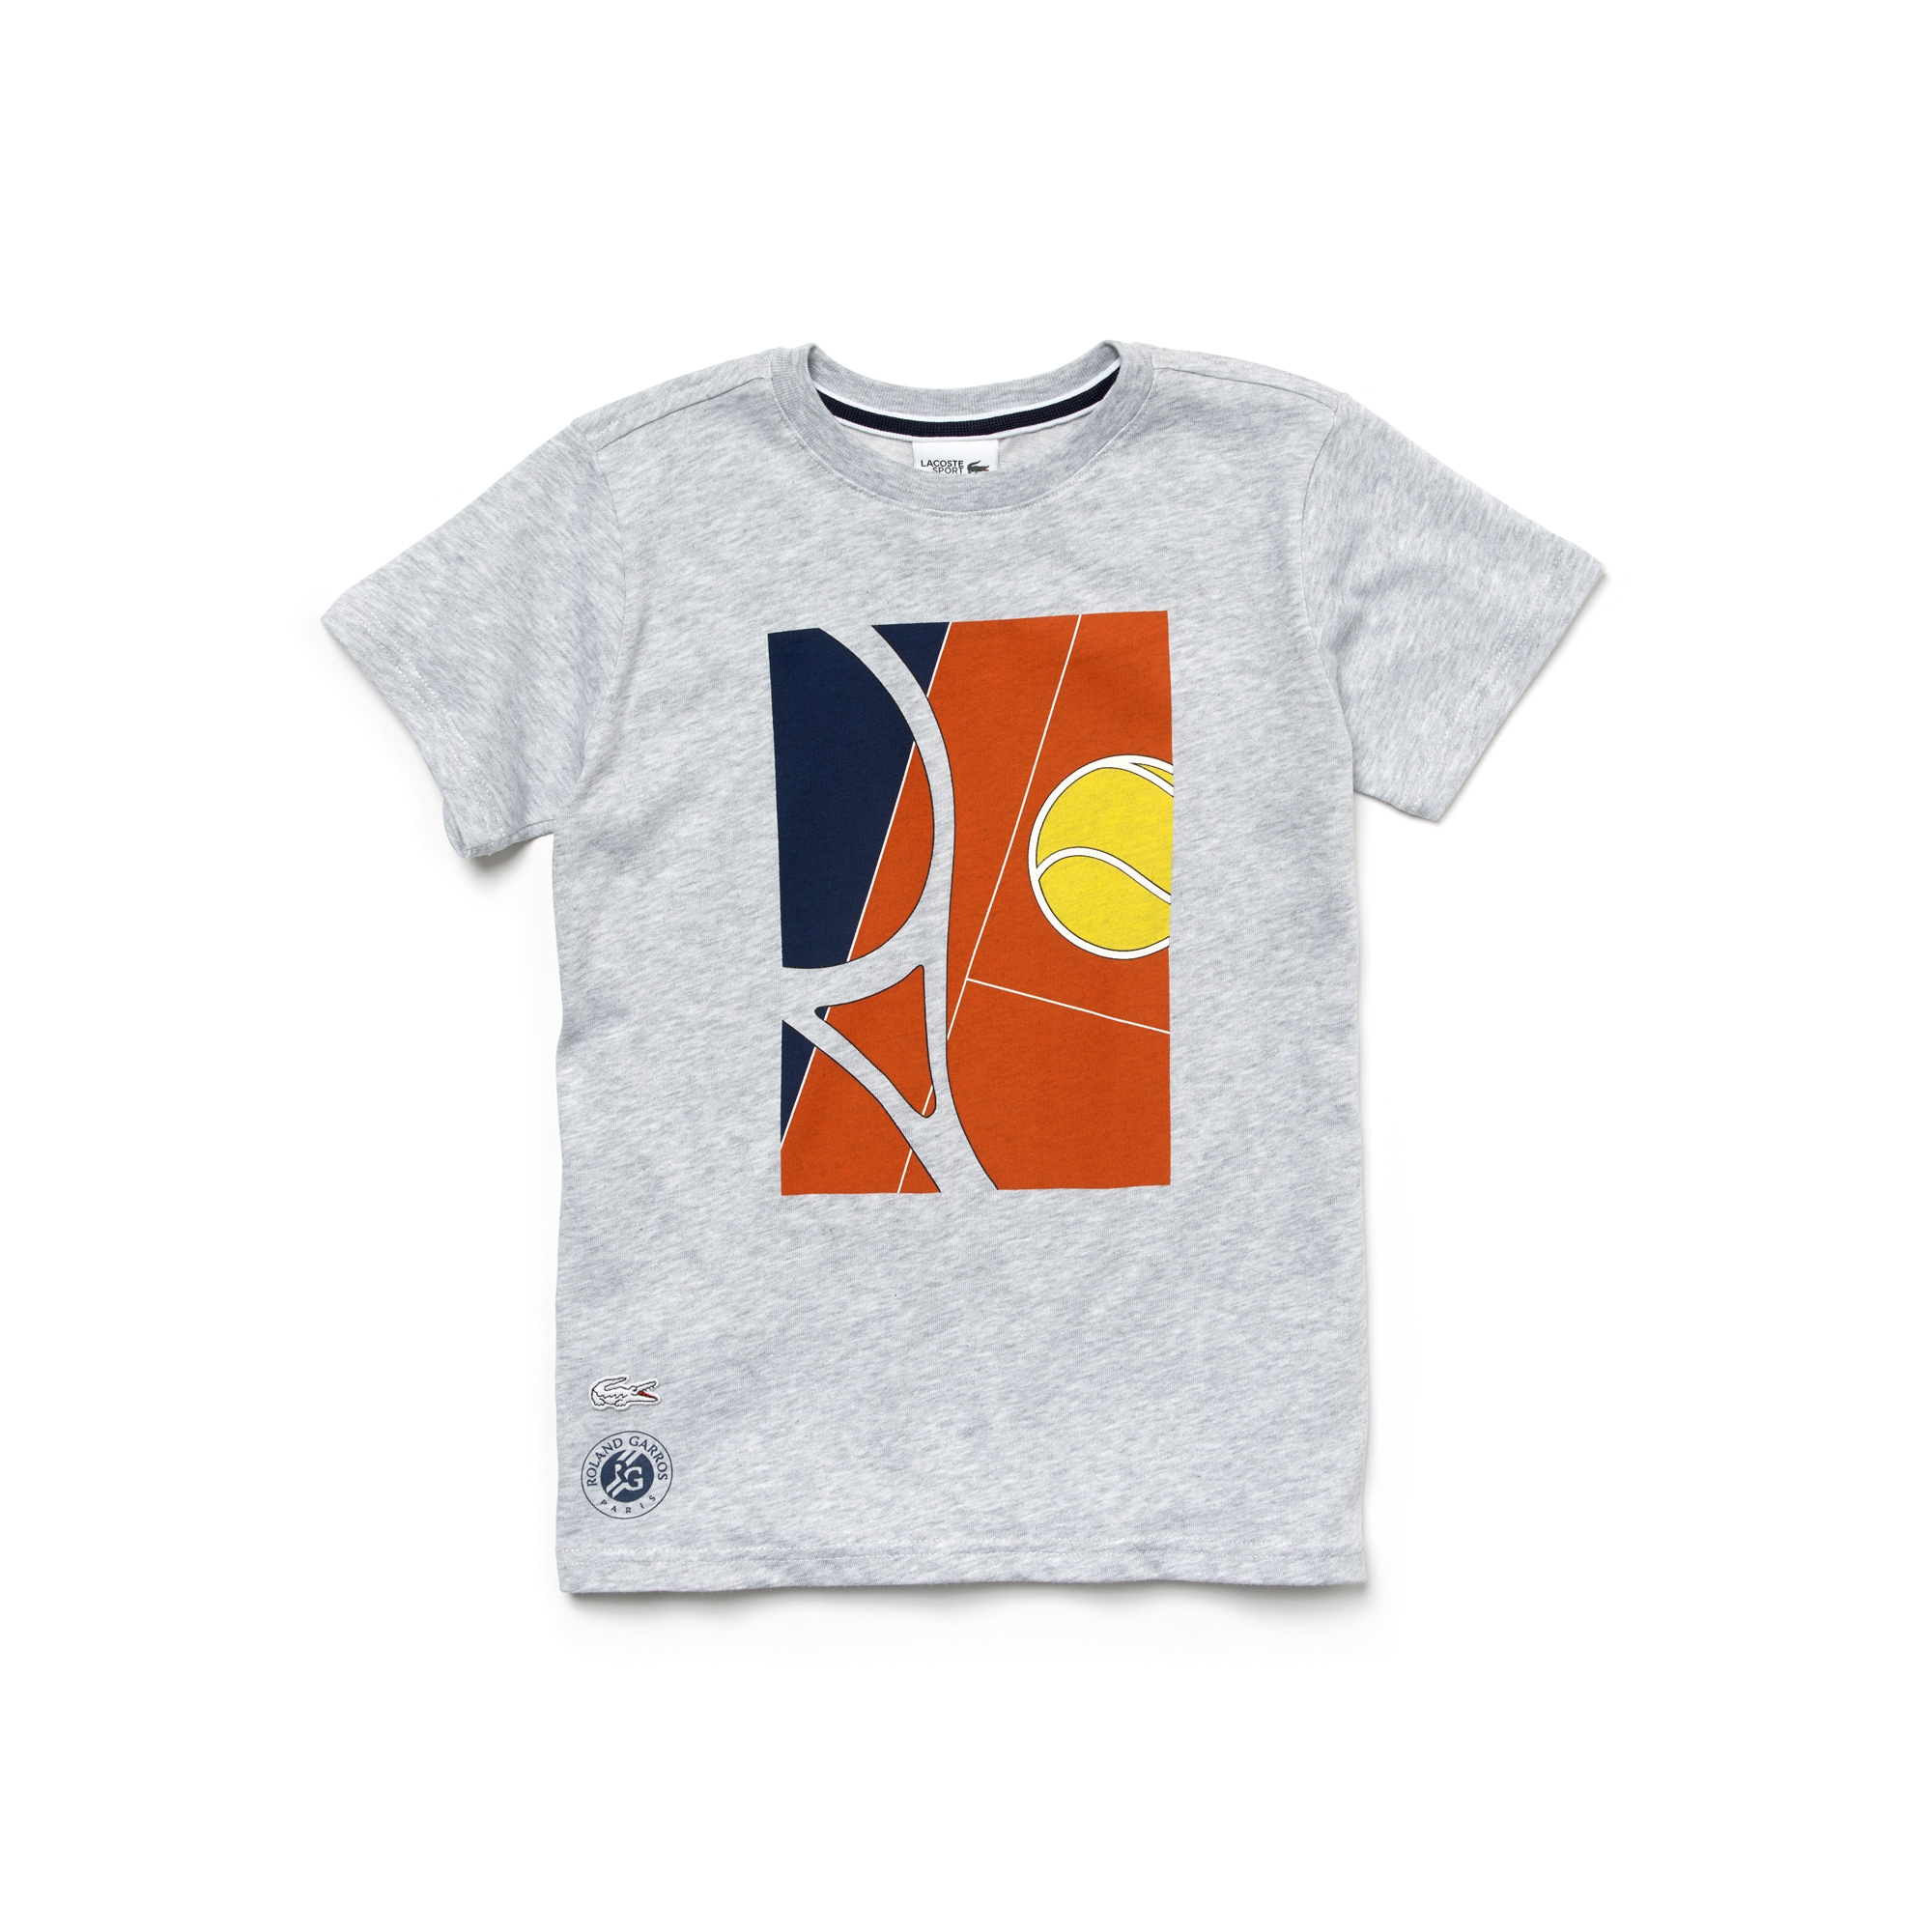 Boy's SPORT French Open Player Print T-Shirt